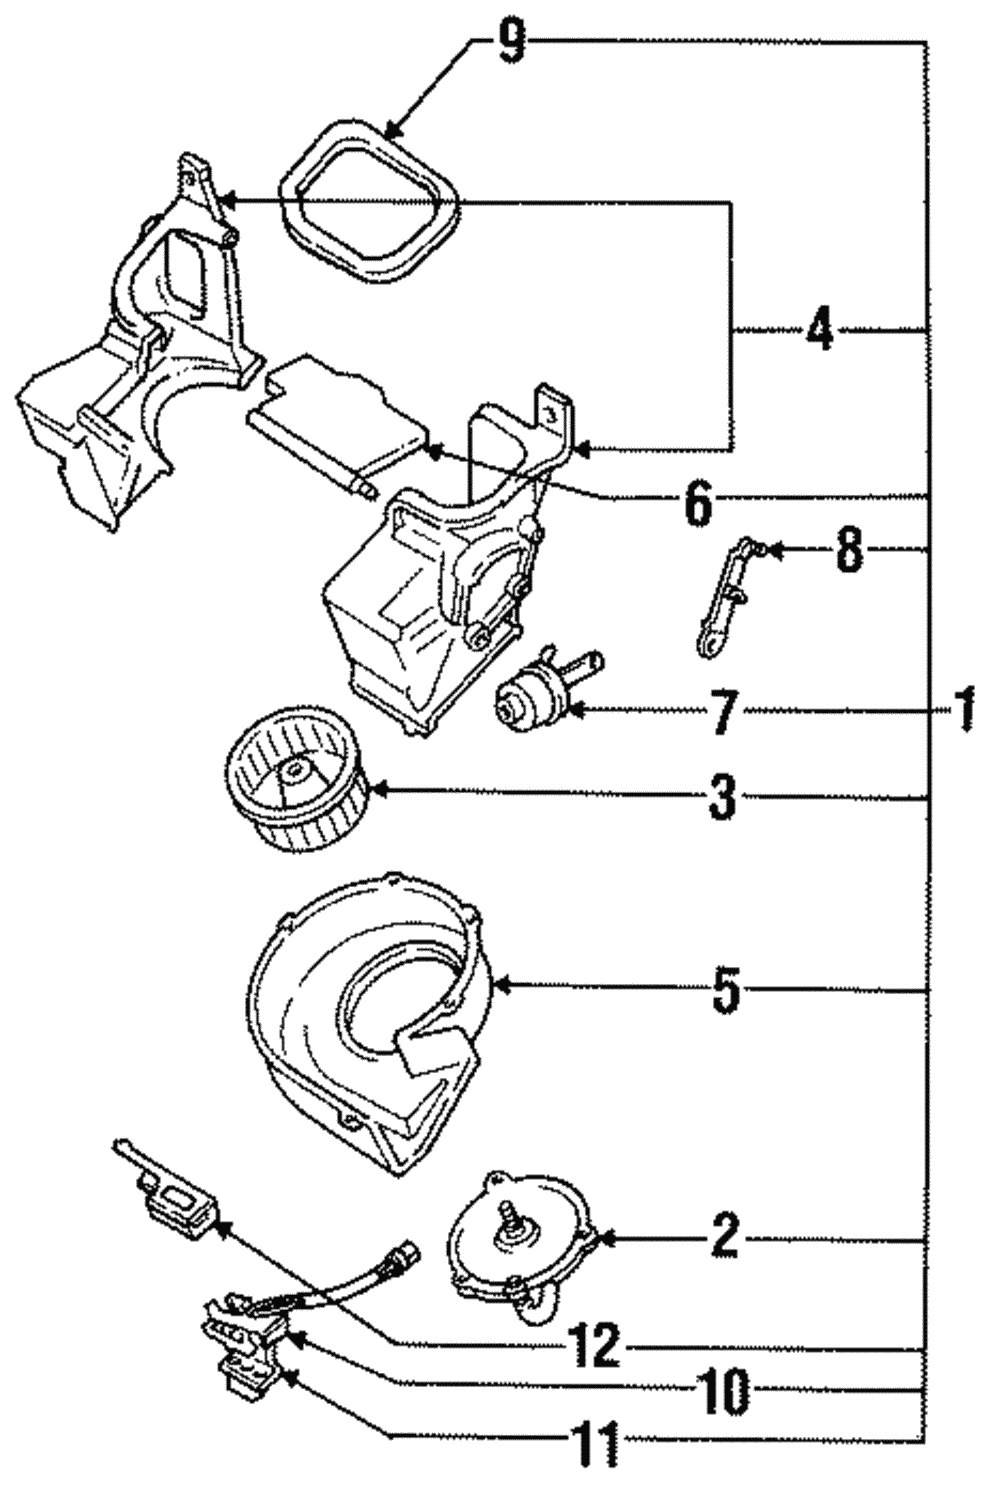 hight resolution of part can be found as 2 in the diagram above genuine subaru parts